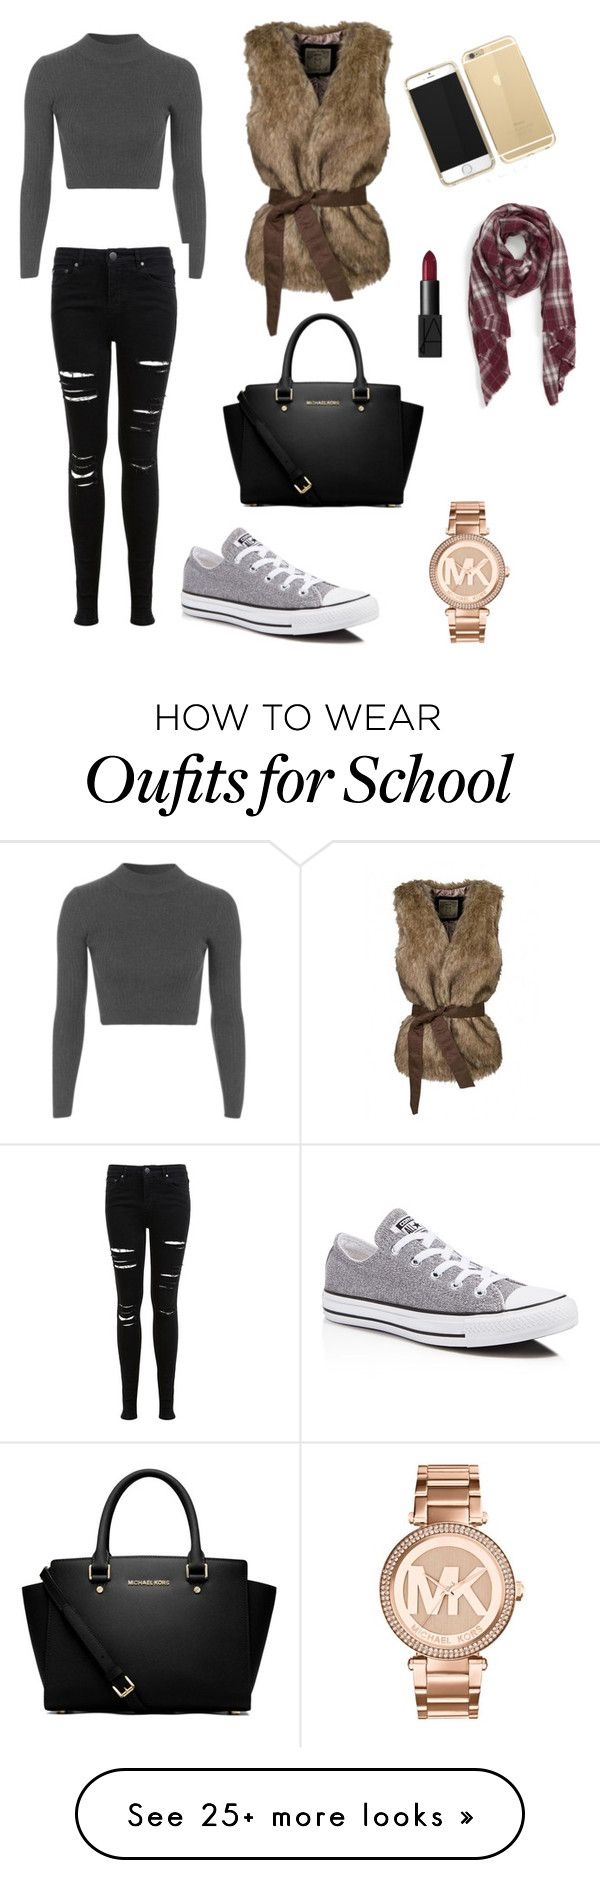 """""""Outfit for School days"""" by sinem-katilmis on Polyvore featuring Topshop, Miss Selfridge, Converse, MICHAEL Michael Kors, Sole Society, Michael Kors and NARS Cosmetics"""